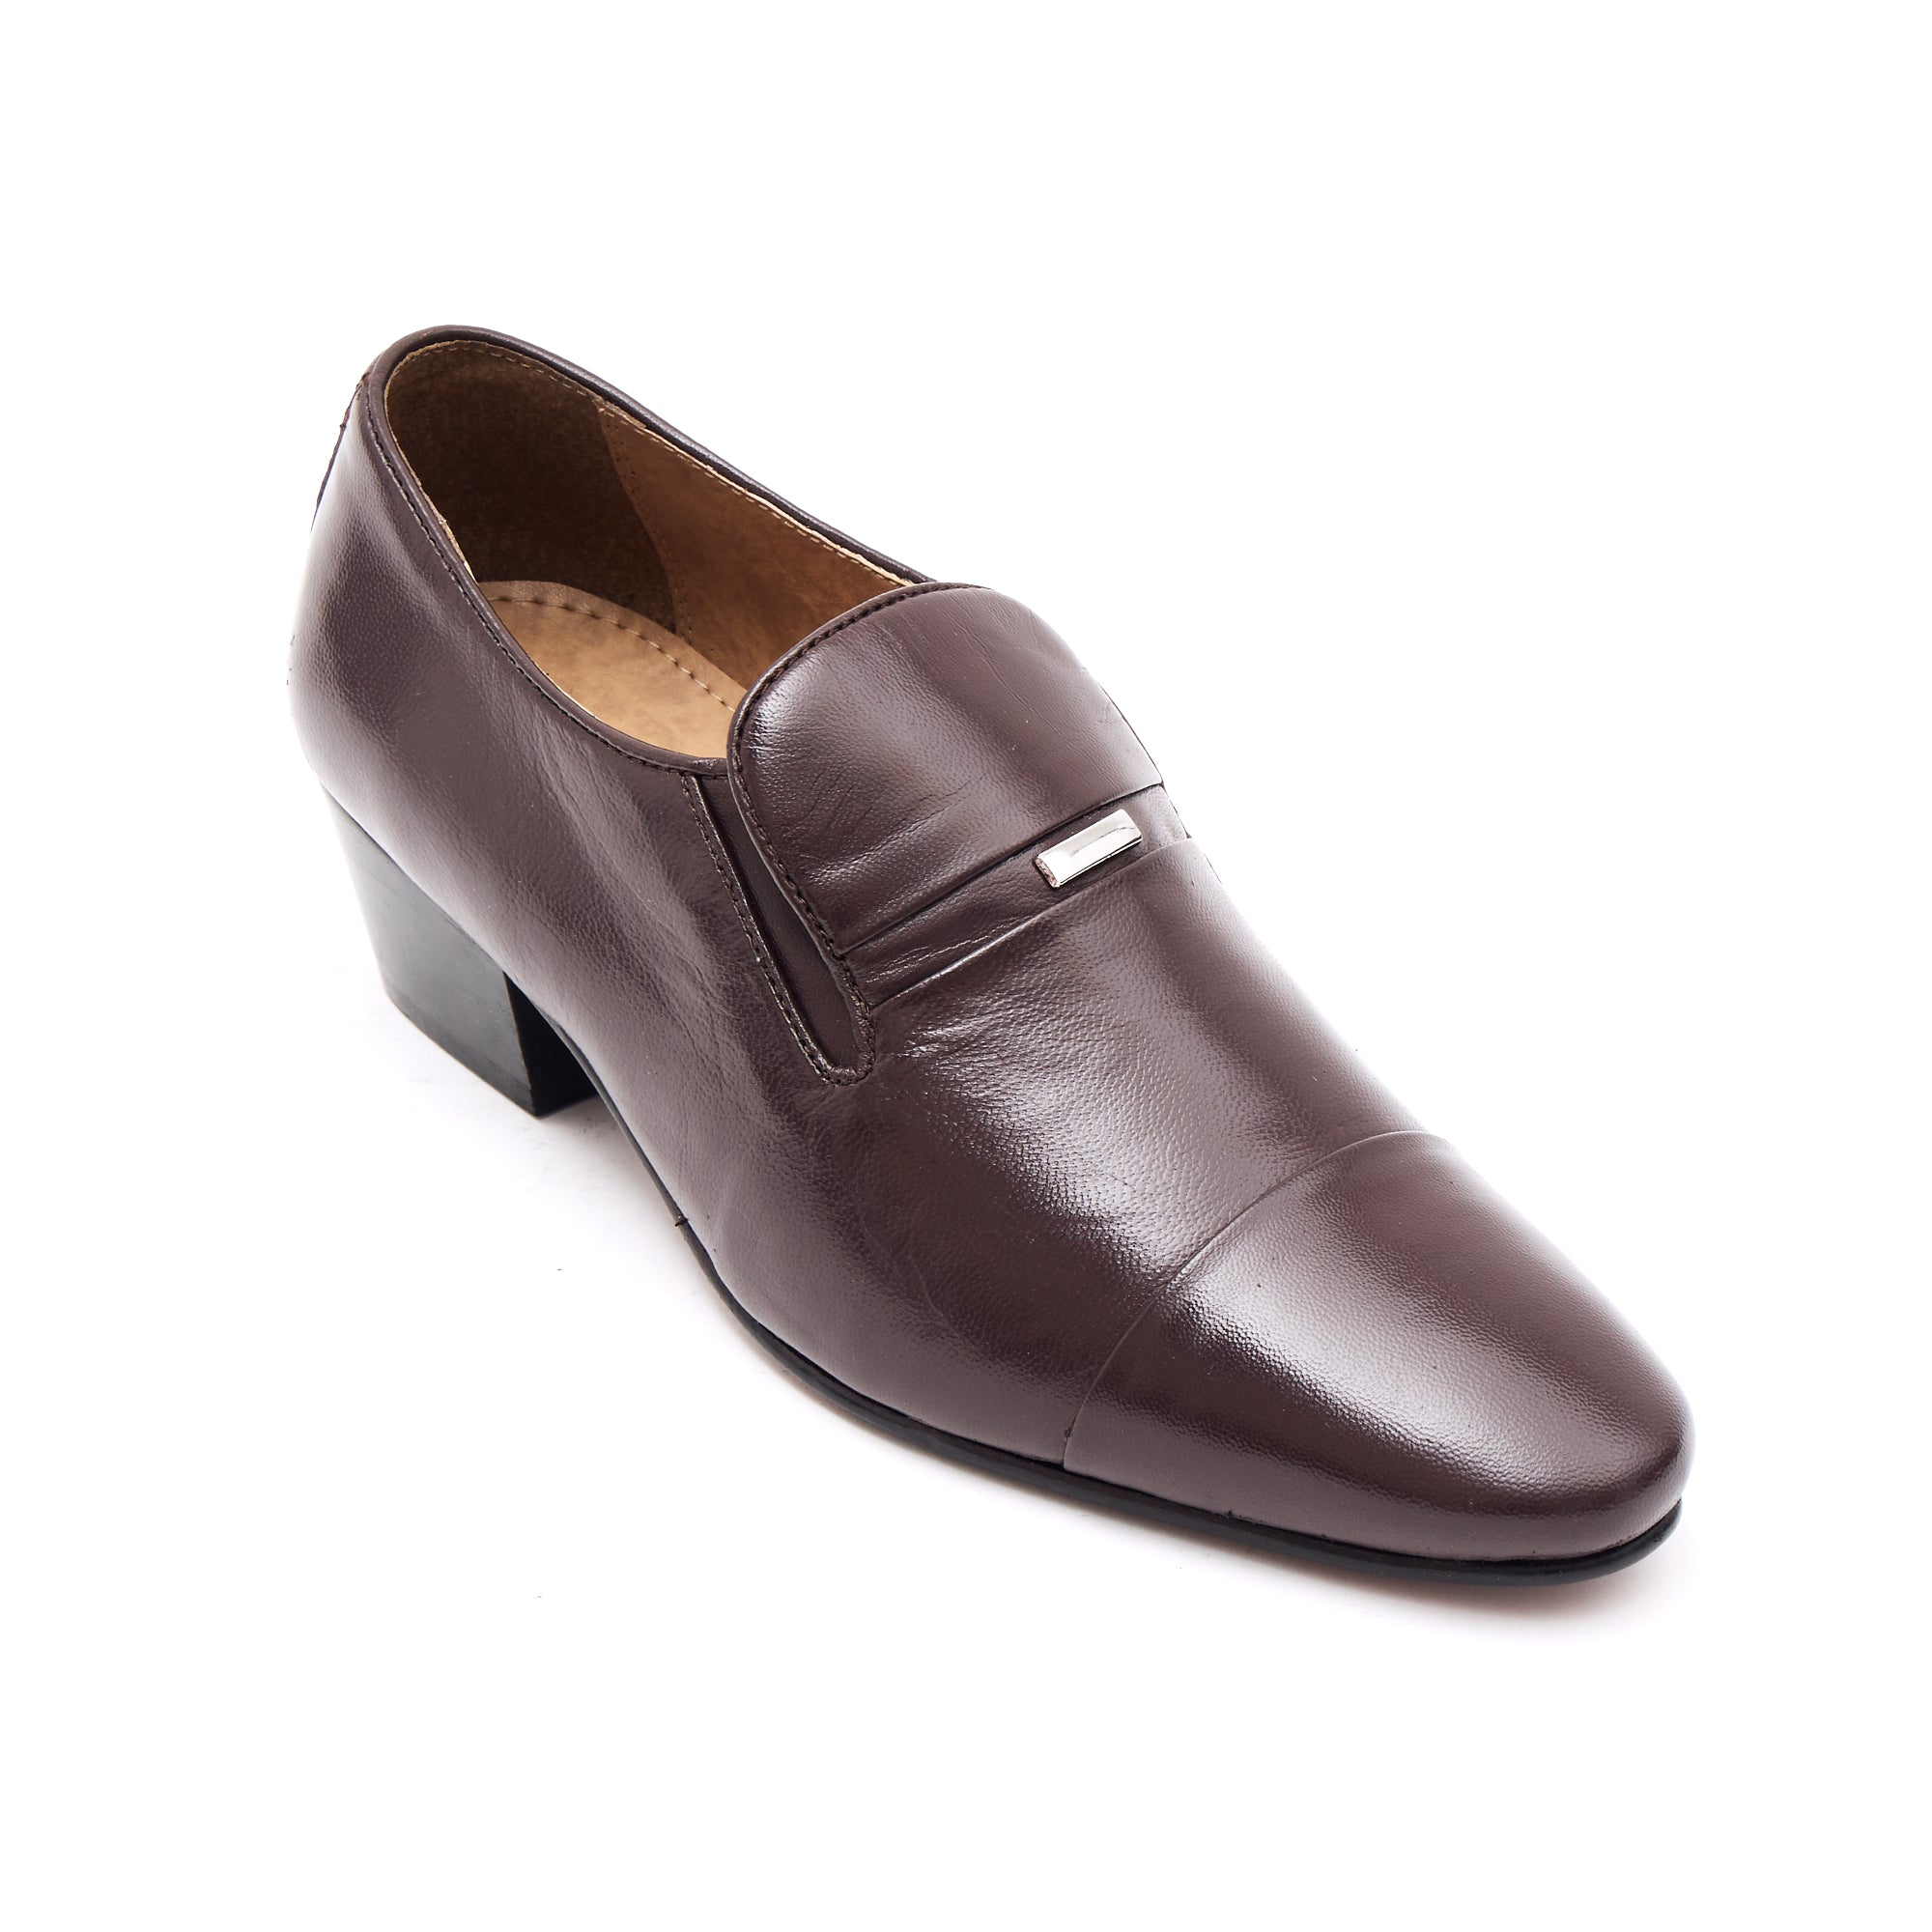 Mens Cuban Heel Leather Shoes - 33478 Brown